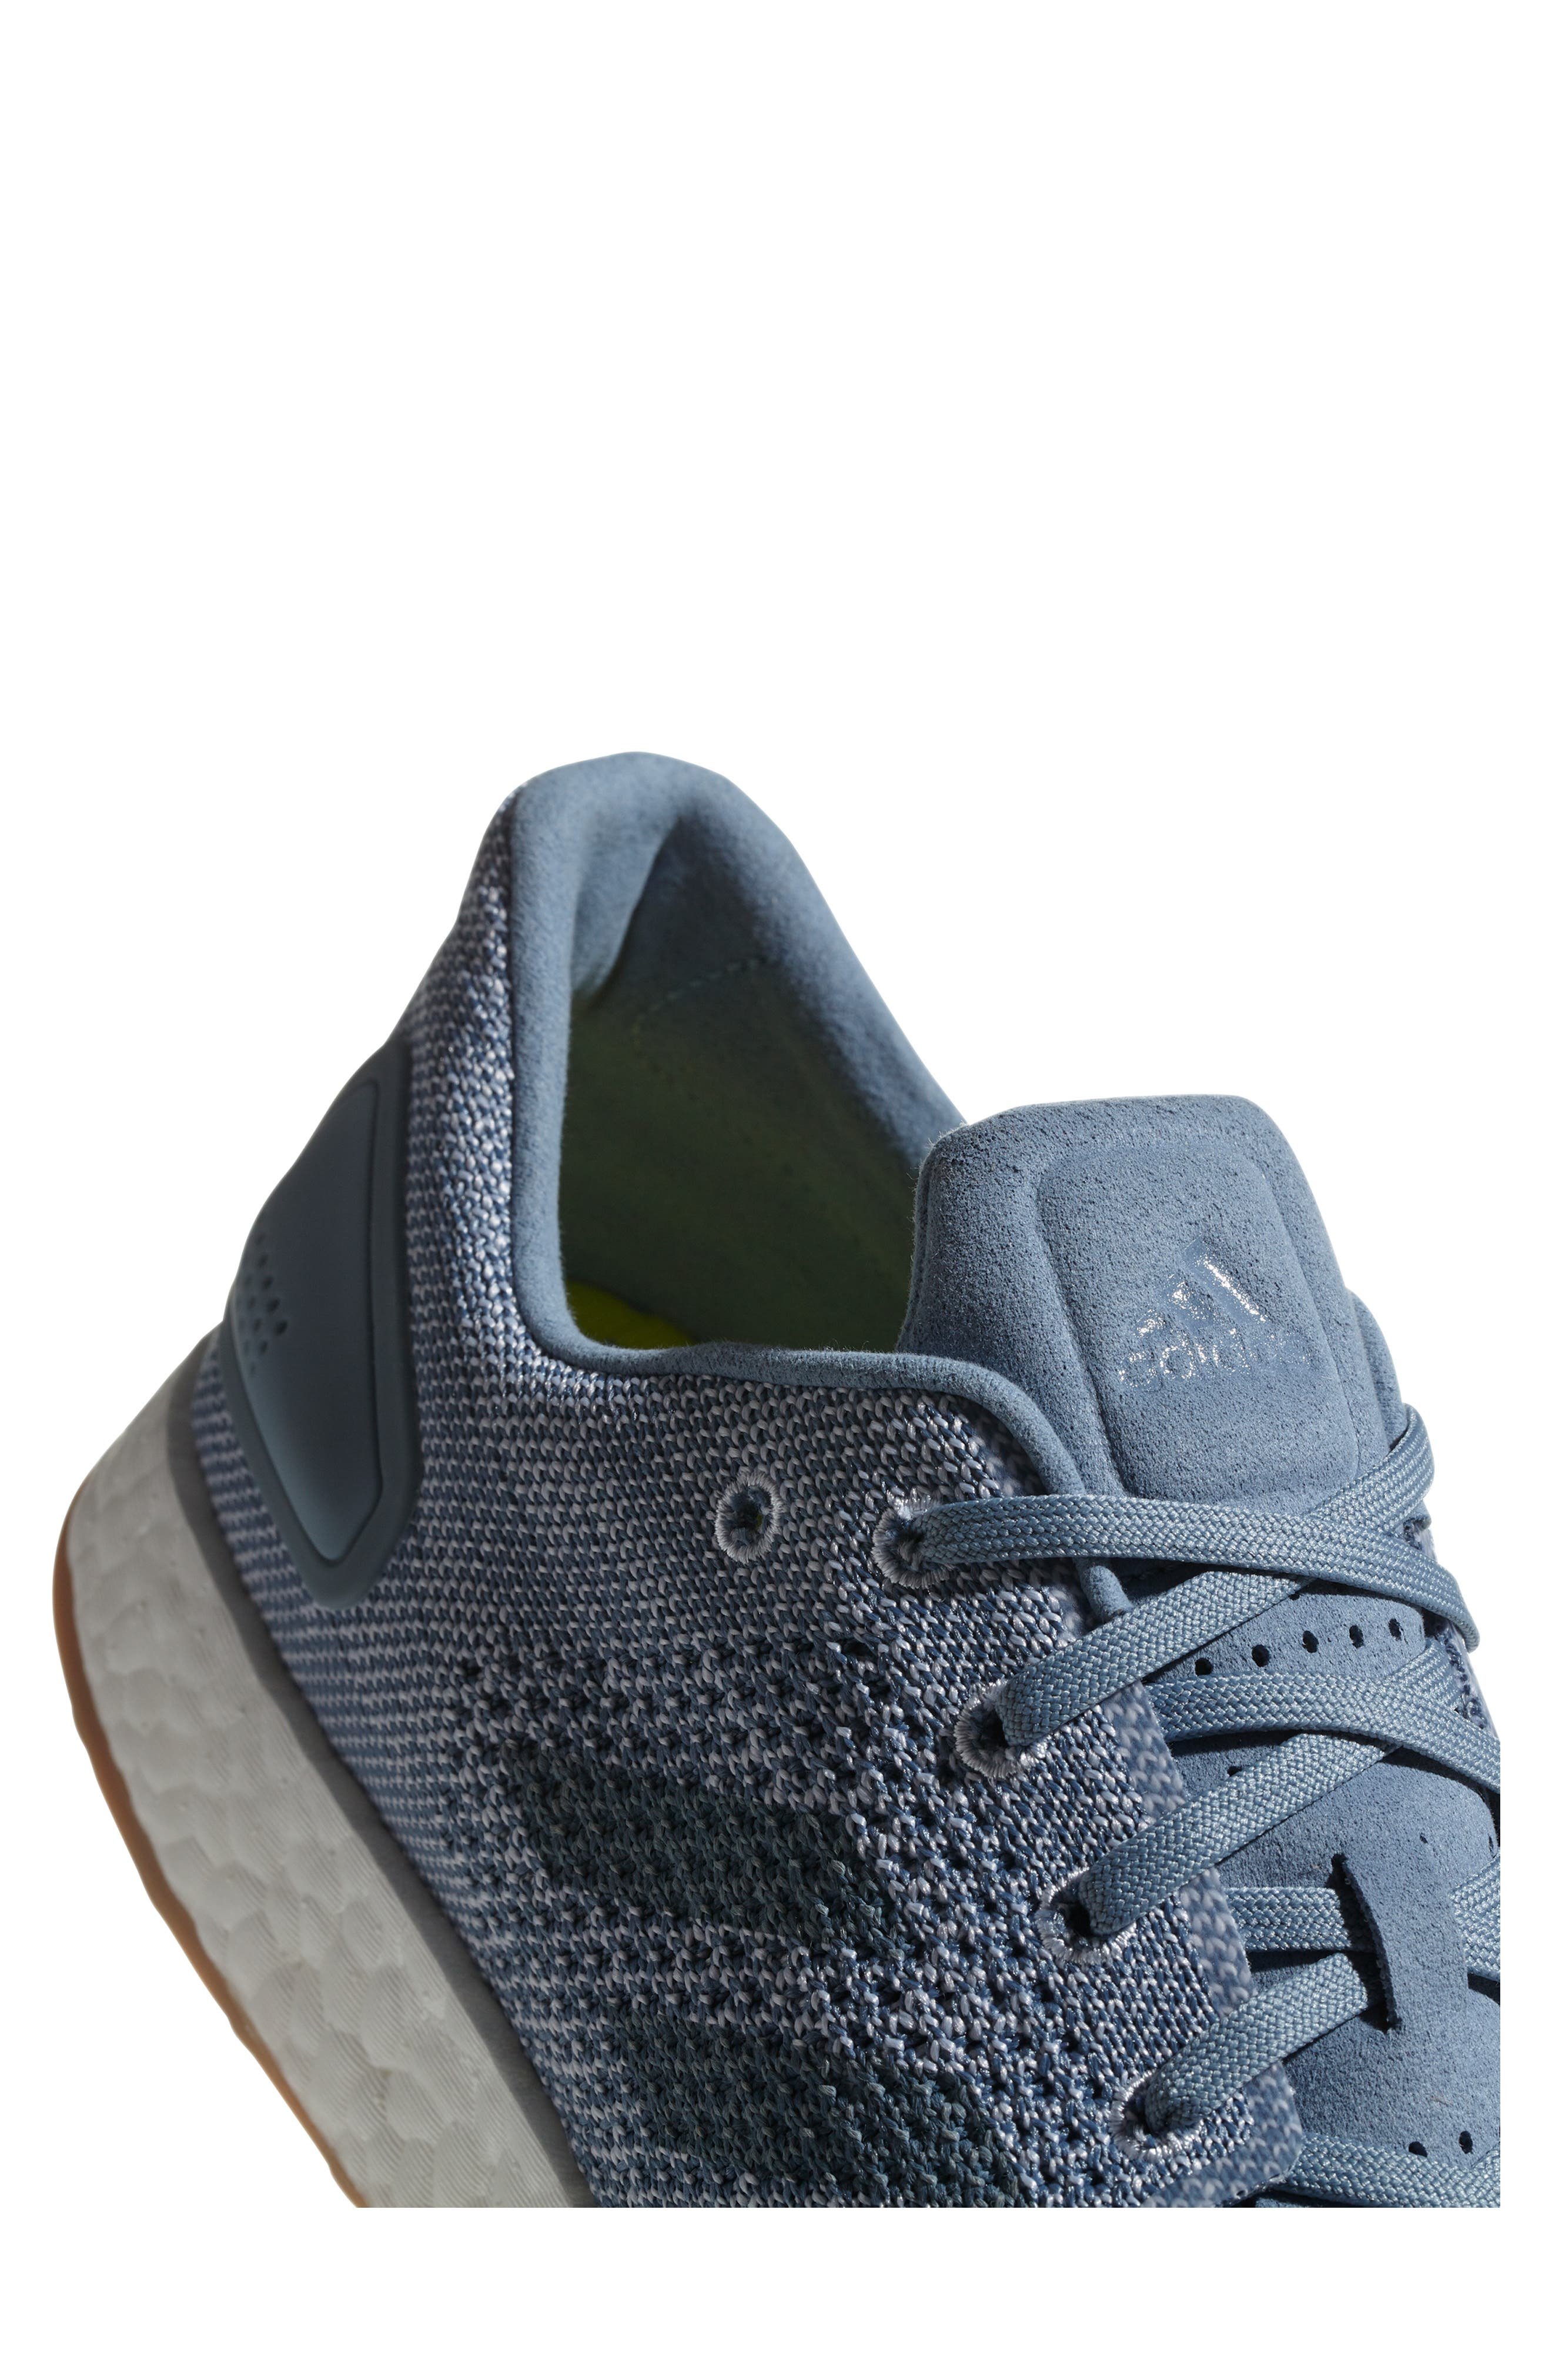 PureBoost DPR Running Shoe,                             Alternate thumbnail 8, color,                             360